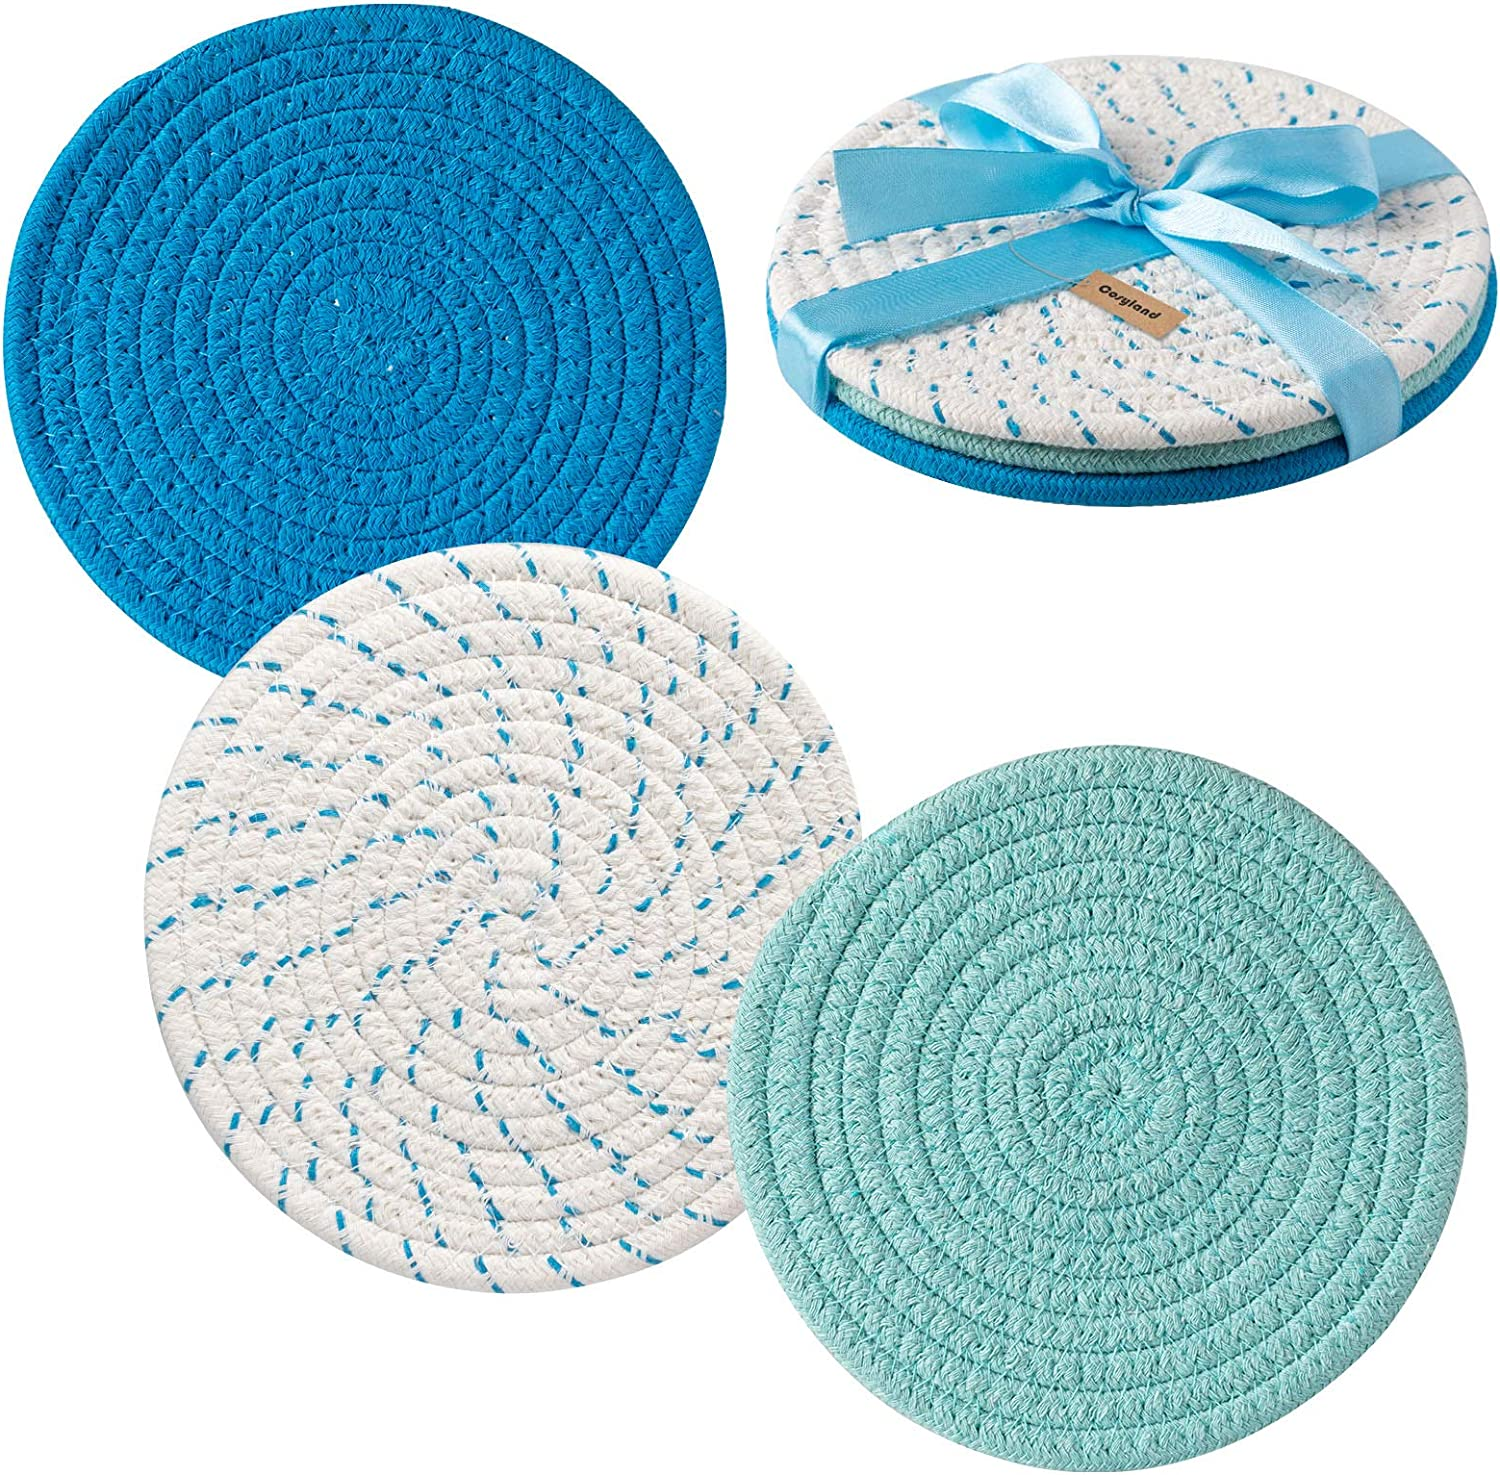 COSYLAND Potholders Trivets Set 100% Pure Cotton Thread Weave (Set of 3) Stylish Coasters, Hot Pads, Hot Mats,Spoon Rest for Cooking and Baking by Diameter 7 Inches